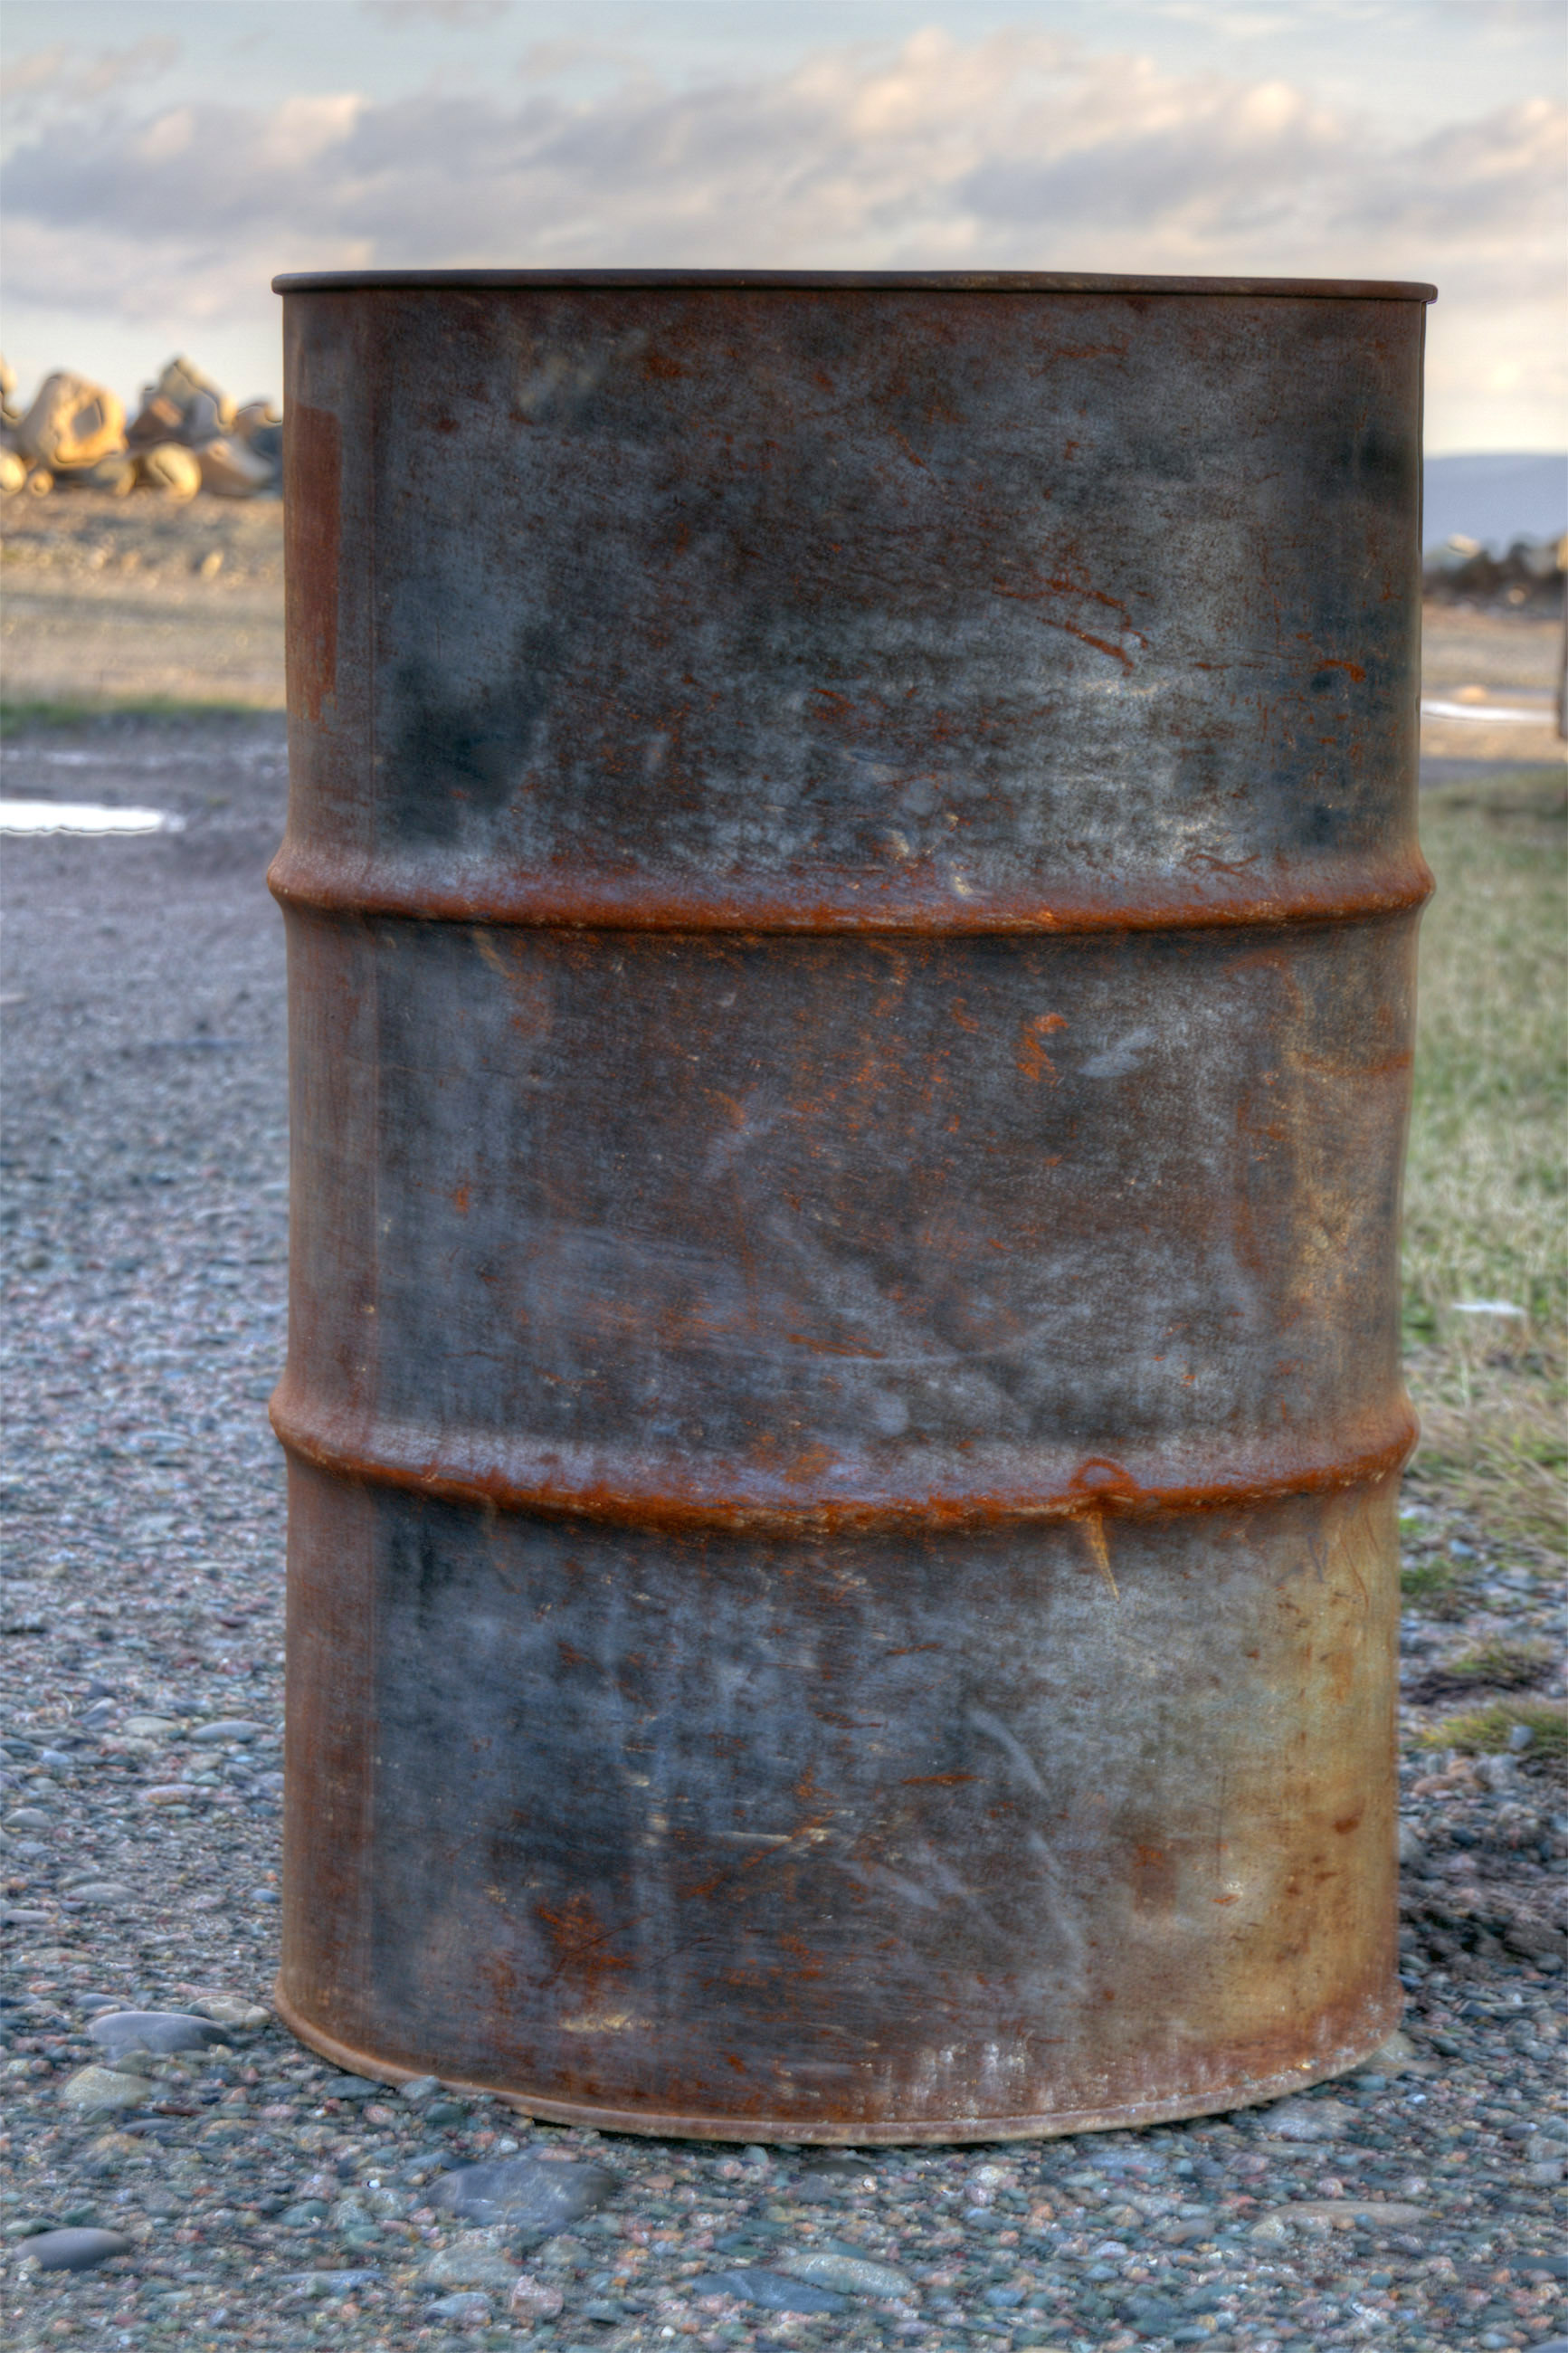 Oil Drum, Pollute, Industry, Iron, Isolated, HQ Photo